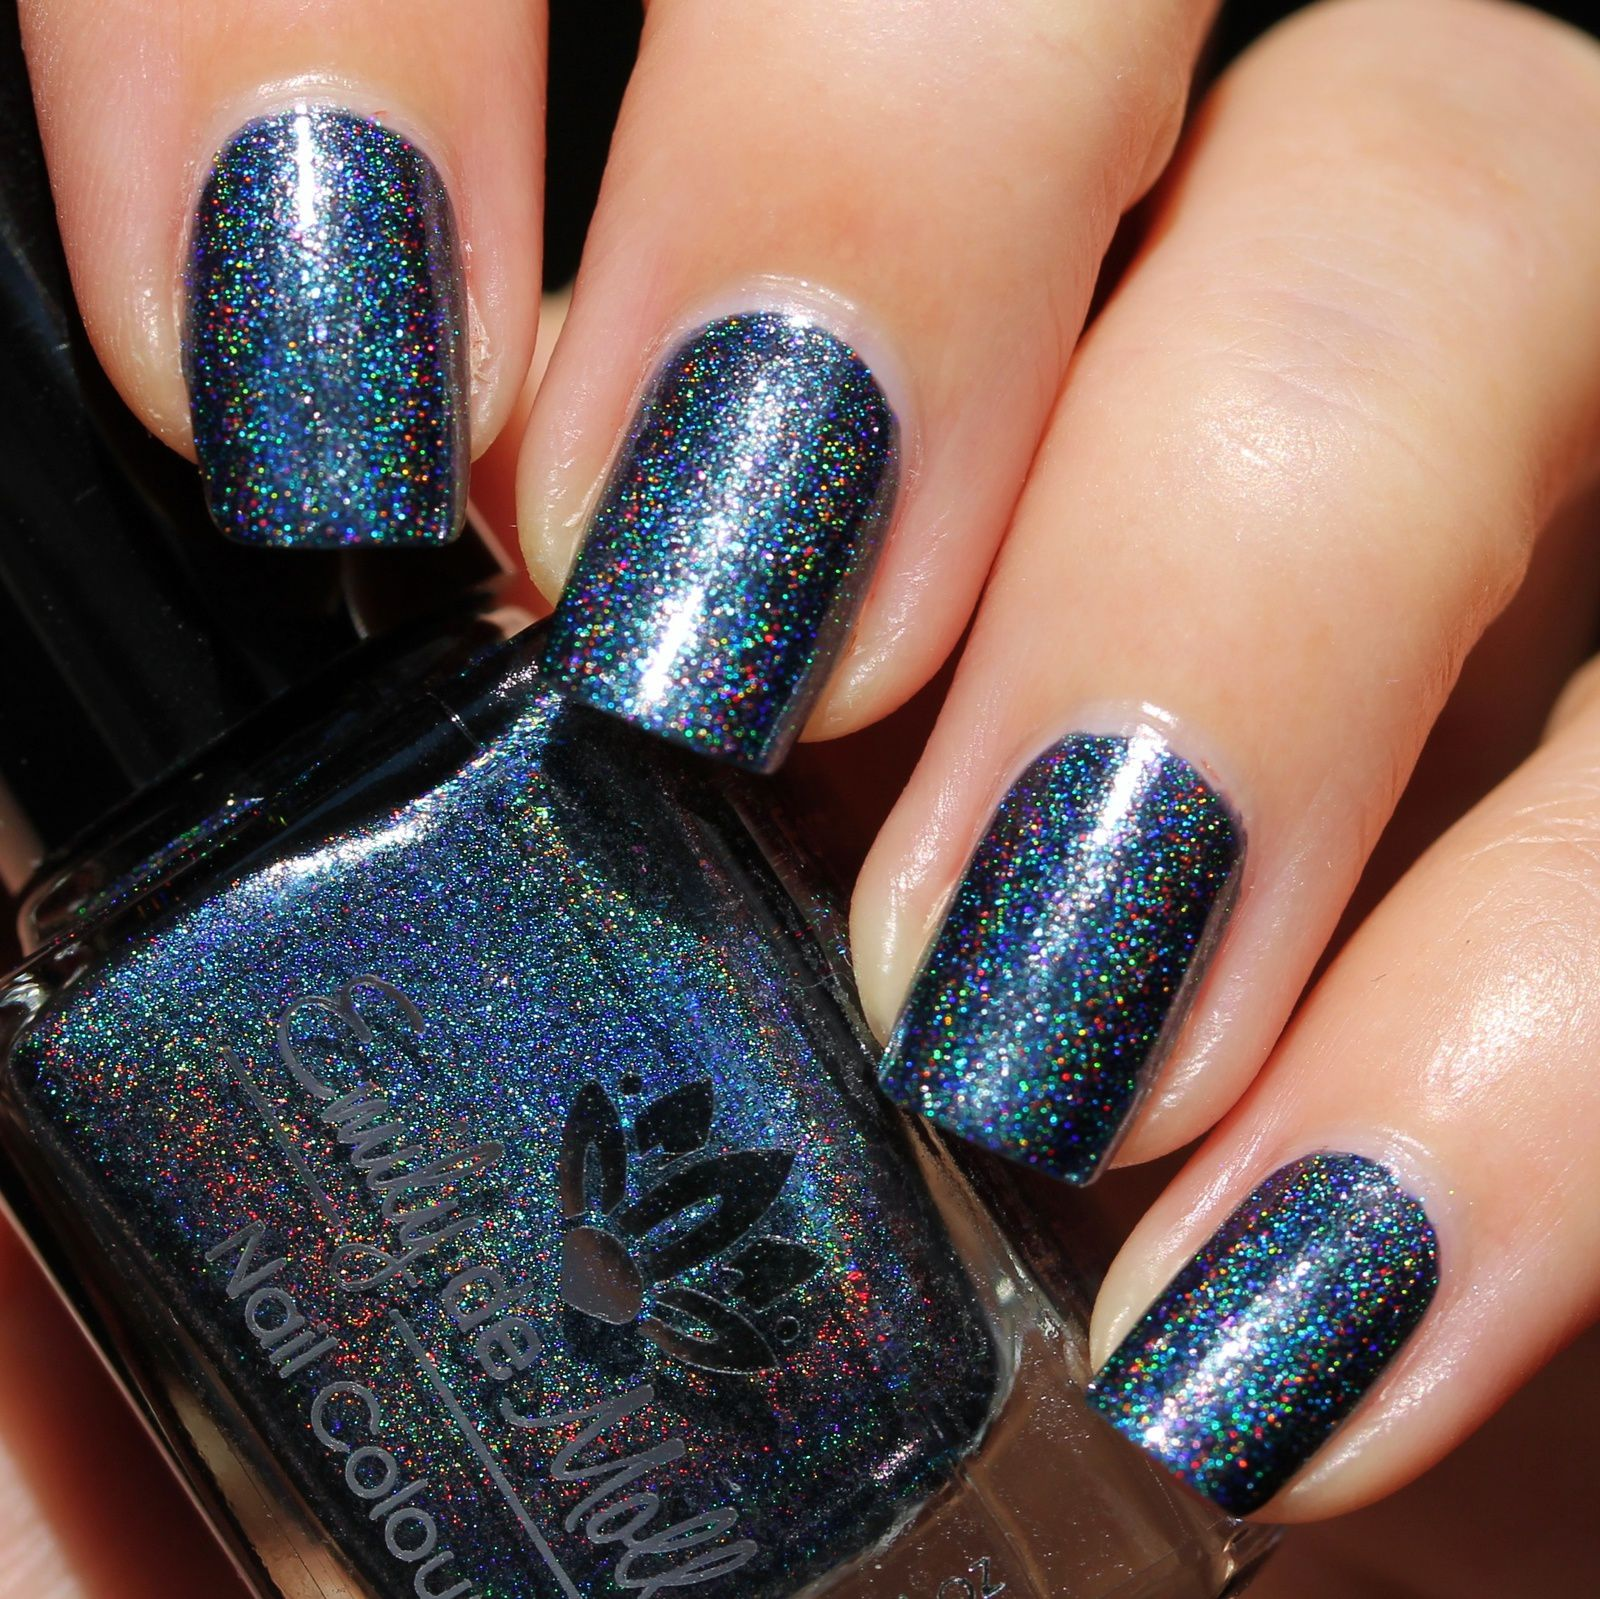 Emily de Molly Night Terrors (2 coats, no top coat)